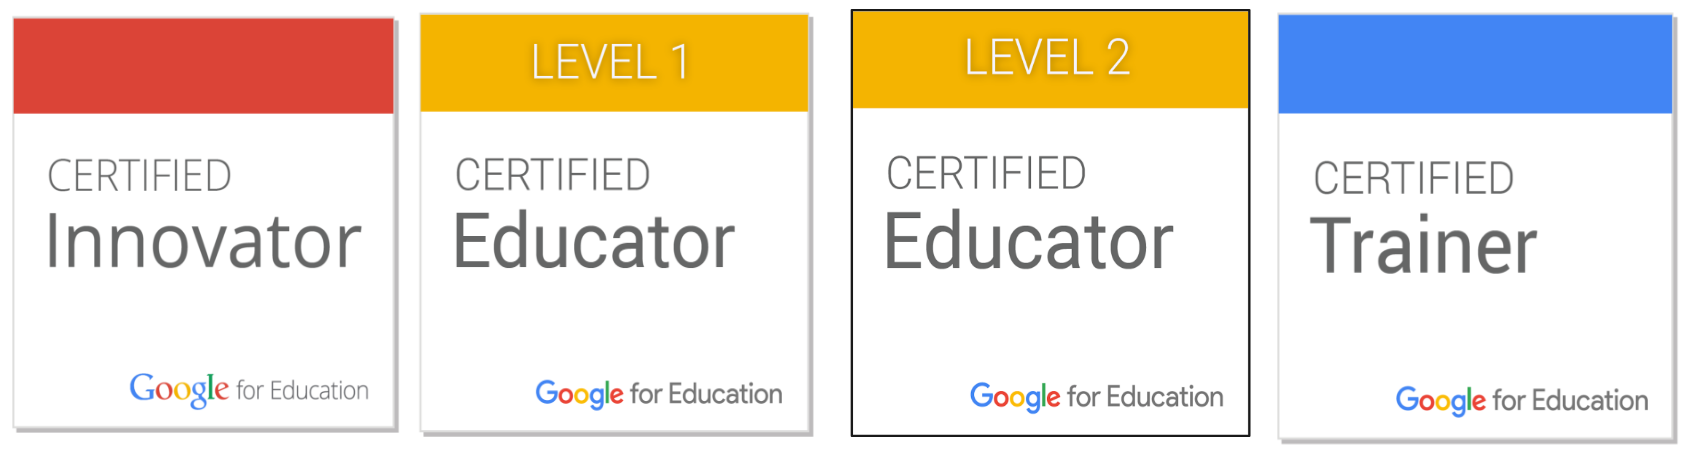 10 Google Certification Tips How To Ace Your Certification Exam